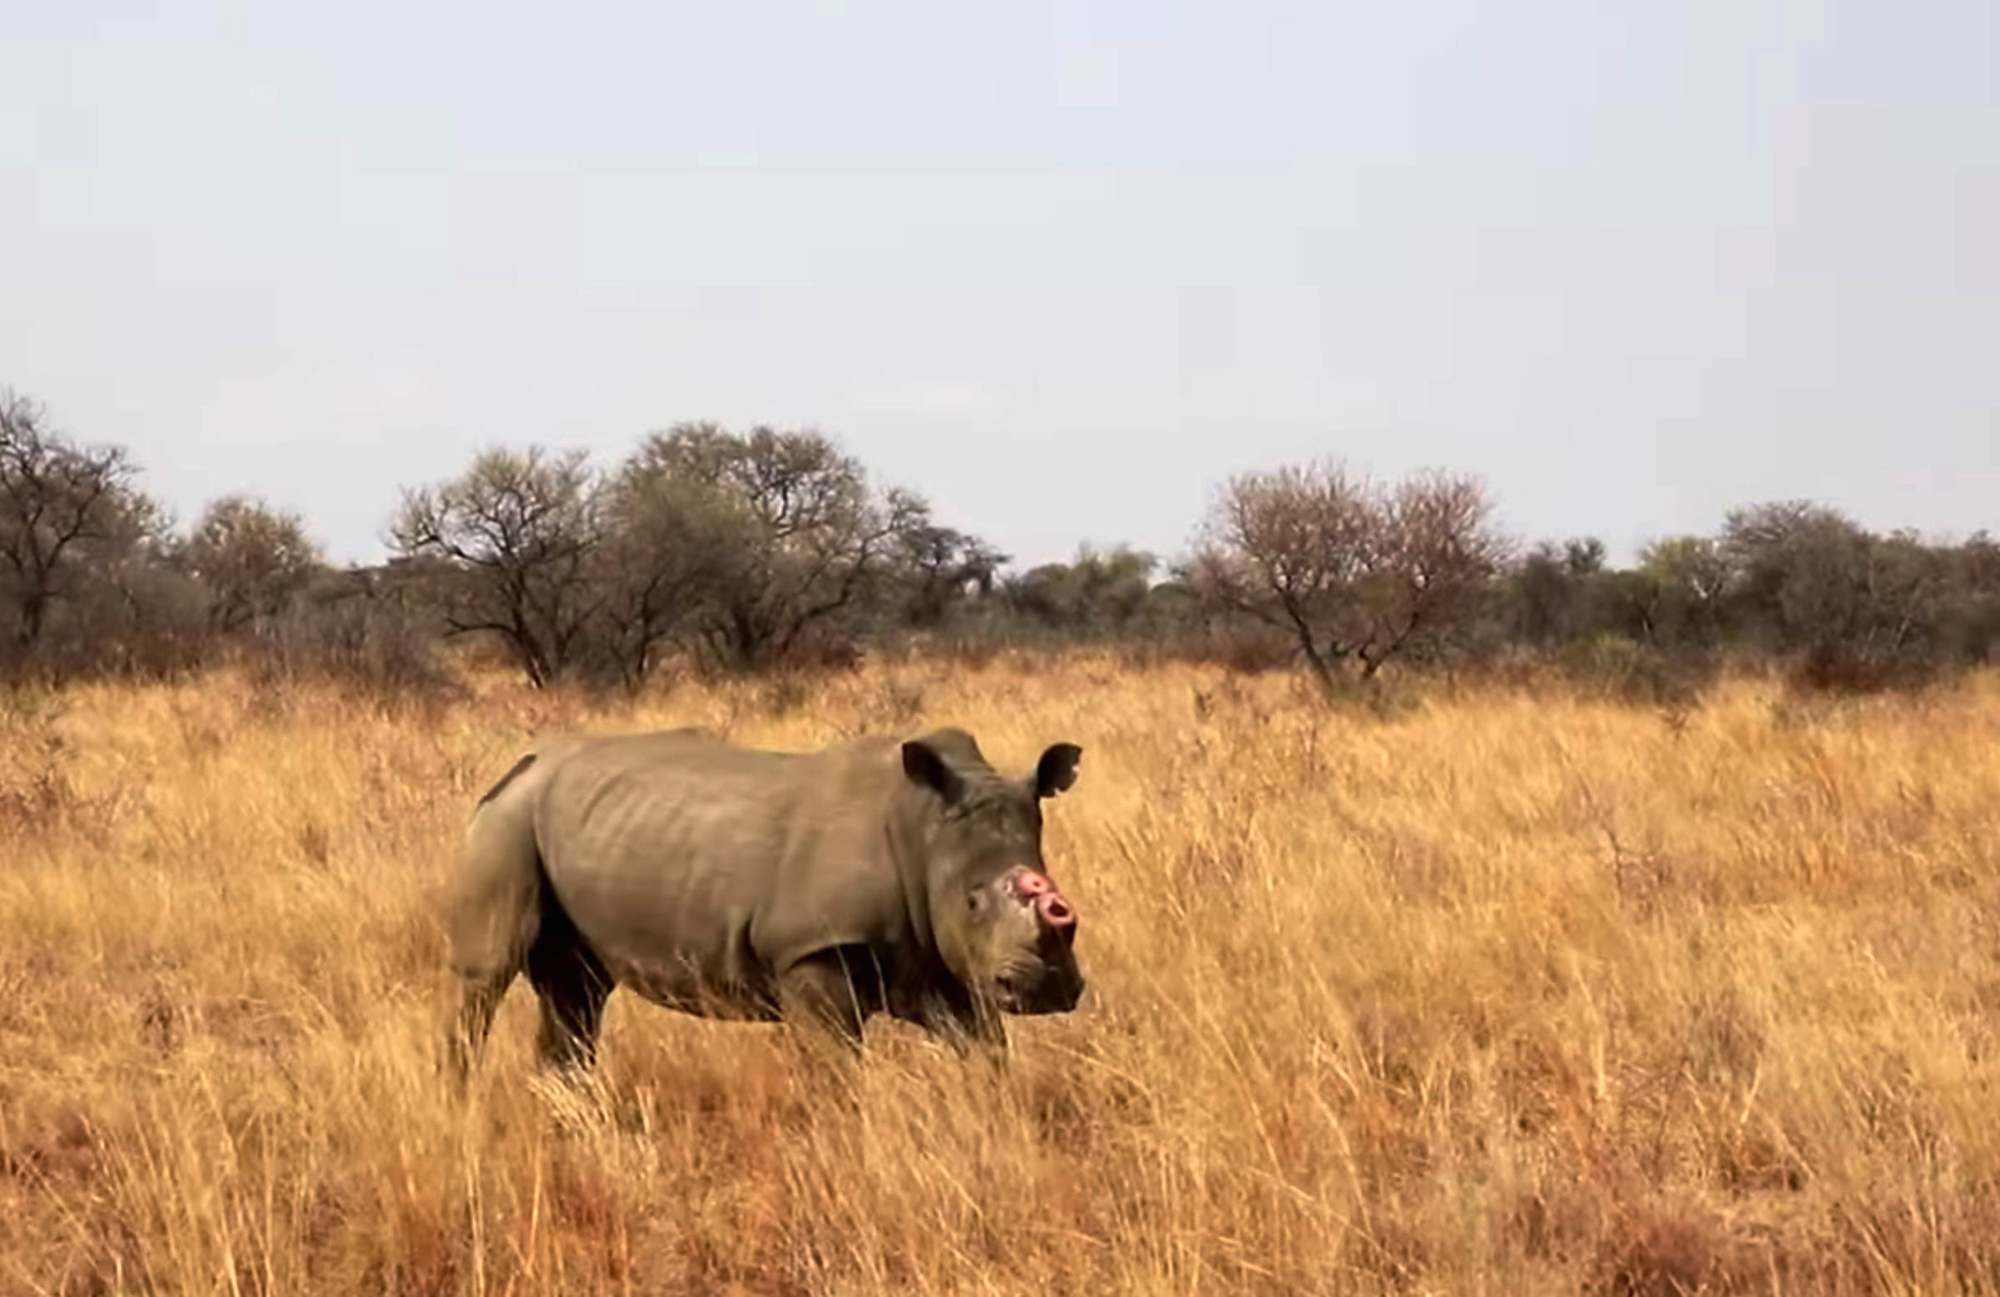 South African Rhinos Dehorned To Deter Poachers